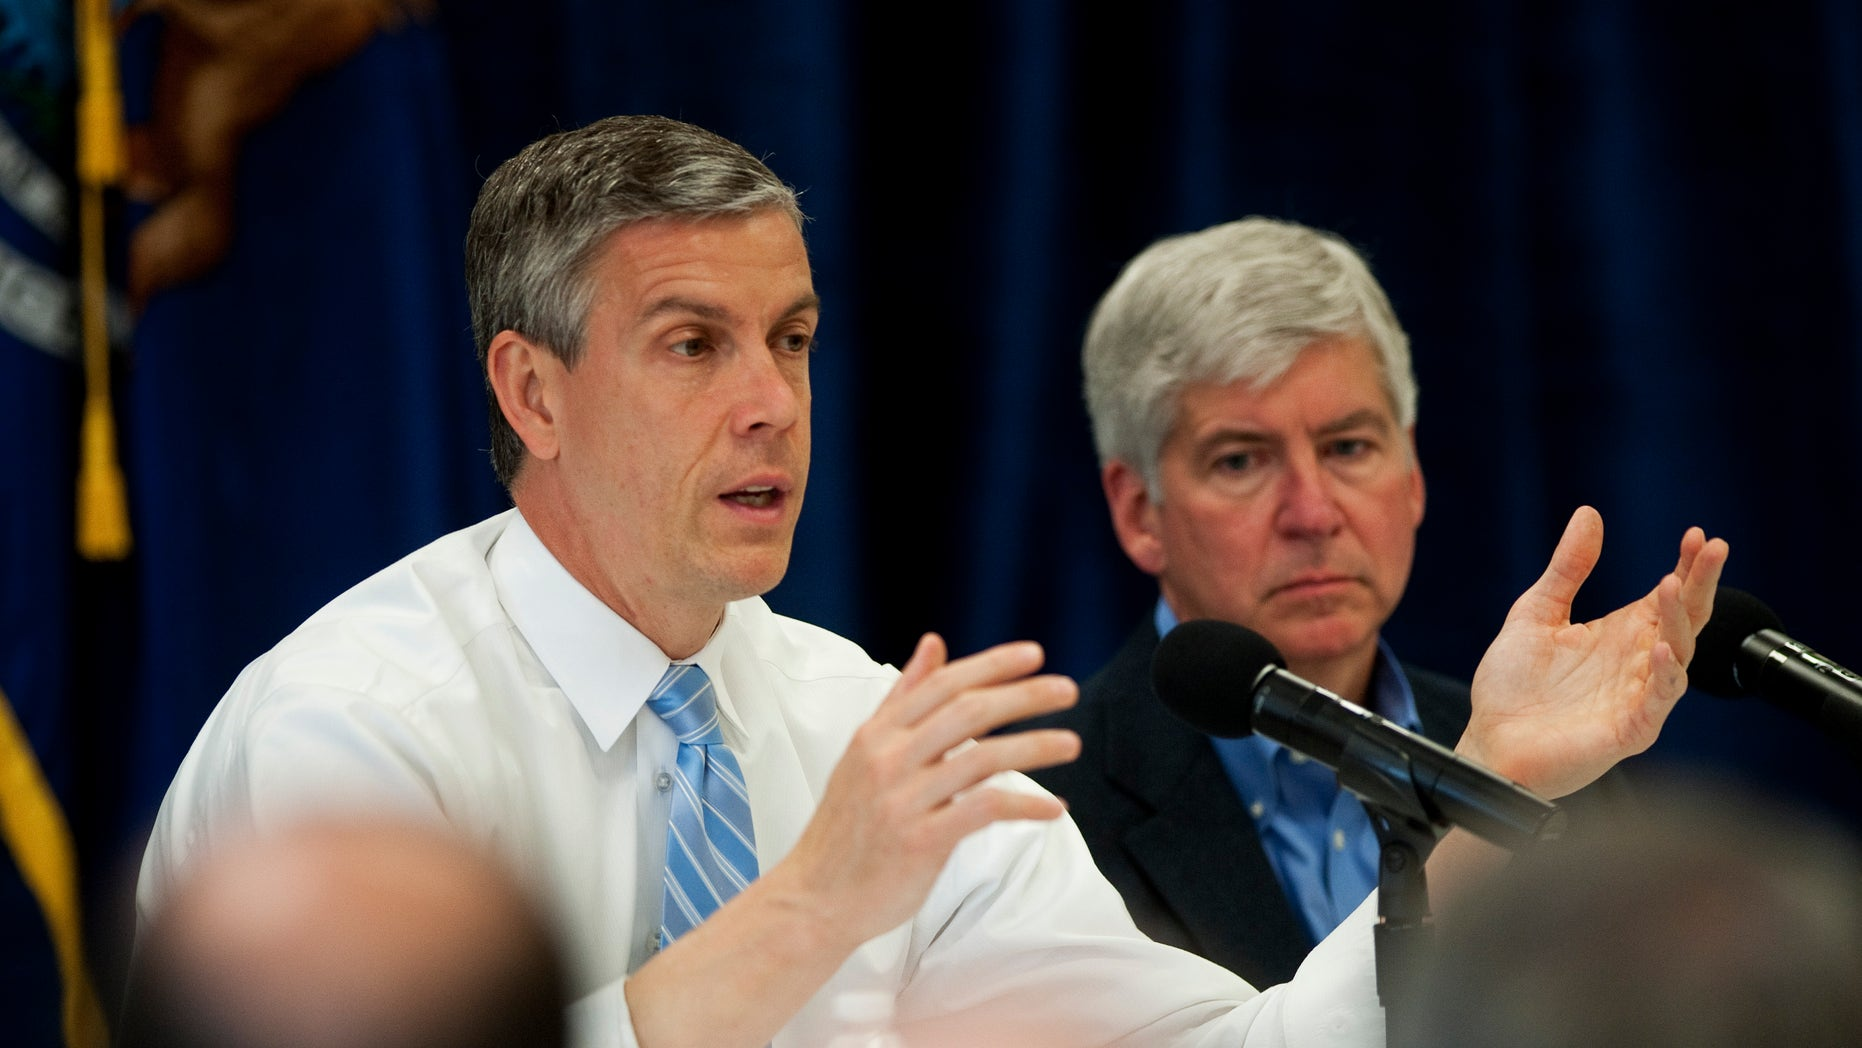 U.S. Secretary of Education Arne Duncan, left, talks to a crowd of people at Perry Child Development Center in Ypsilanti, Mich. on Monday, May 6, 2013. (AP Photo/AnnAbor.Com, Daniel Brenner)